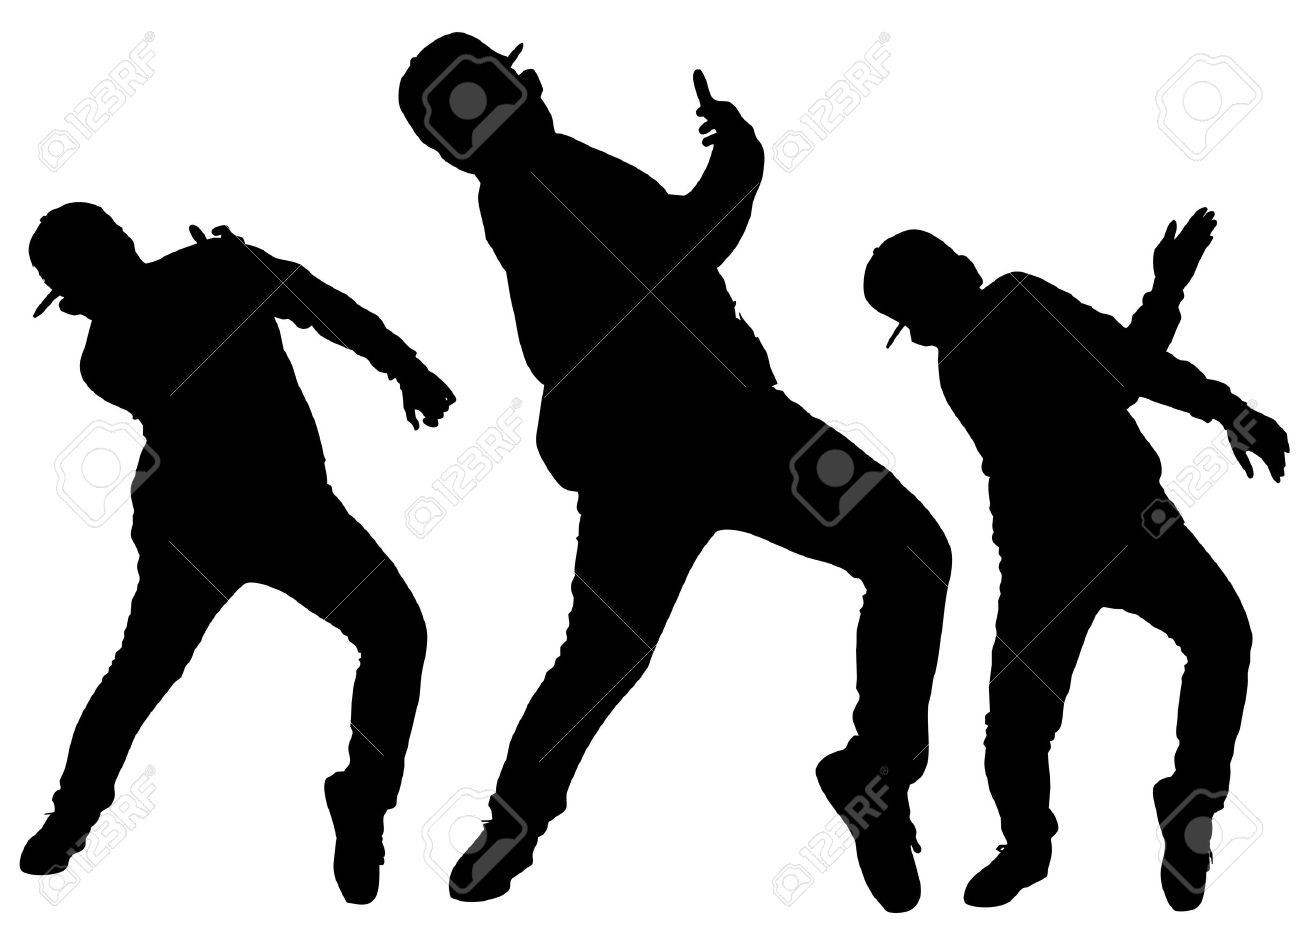 Silhouette Of Hip Hop Dancer Vector Files Stock